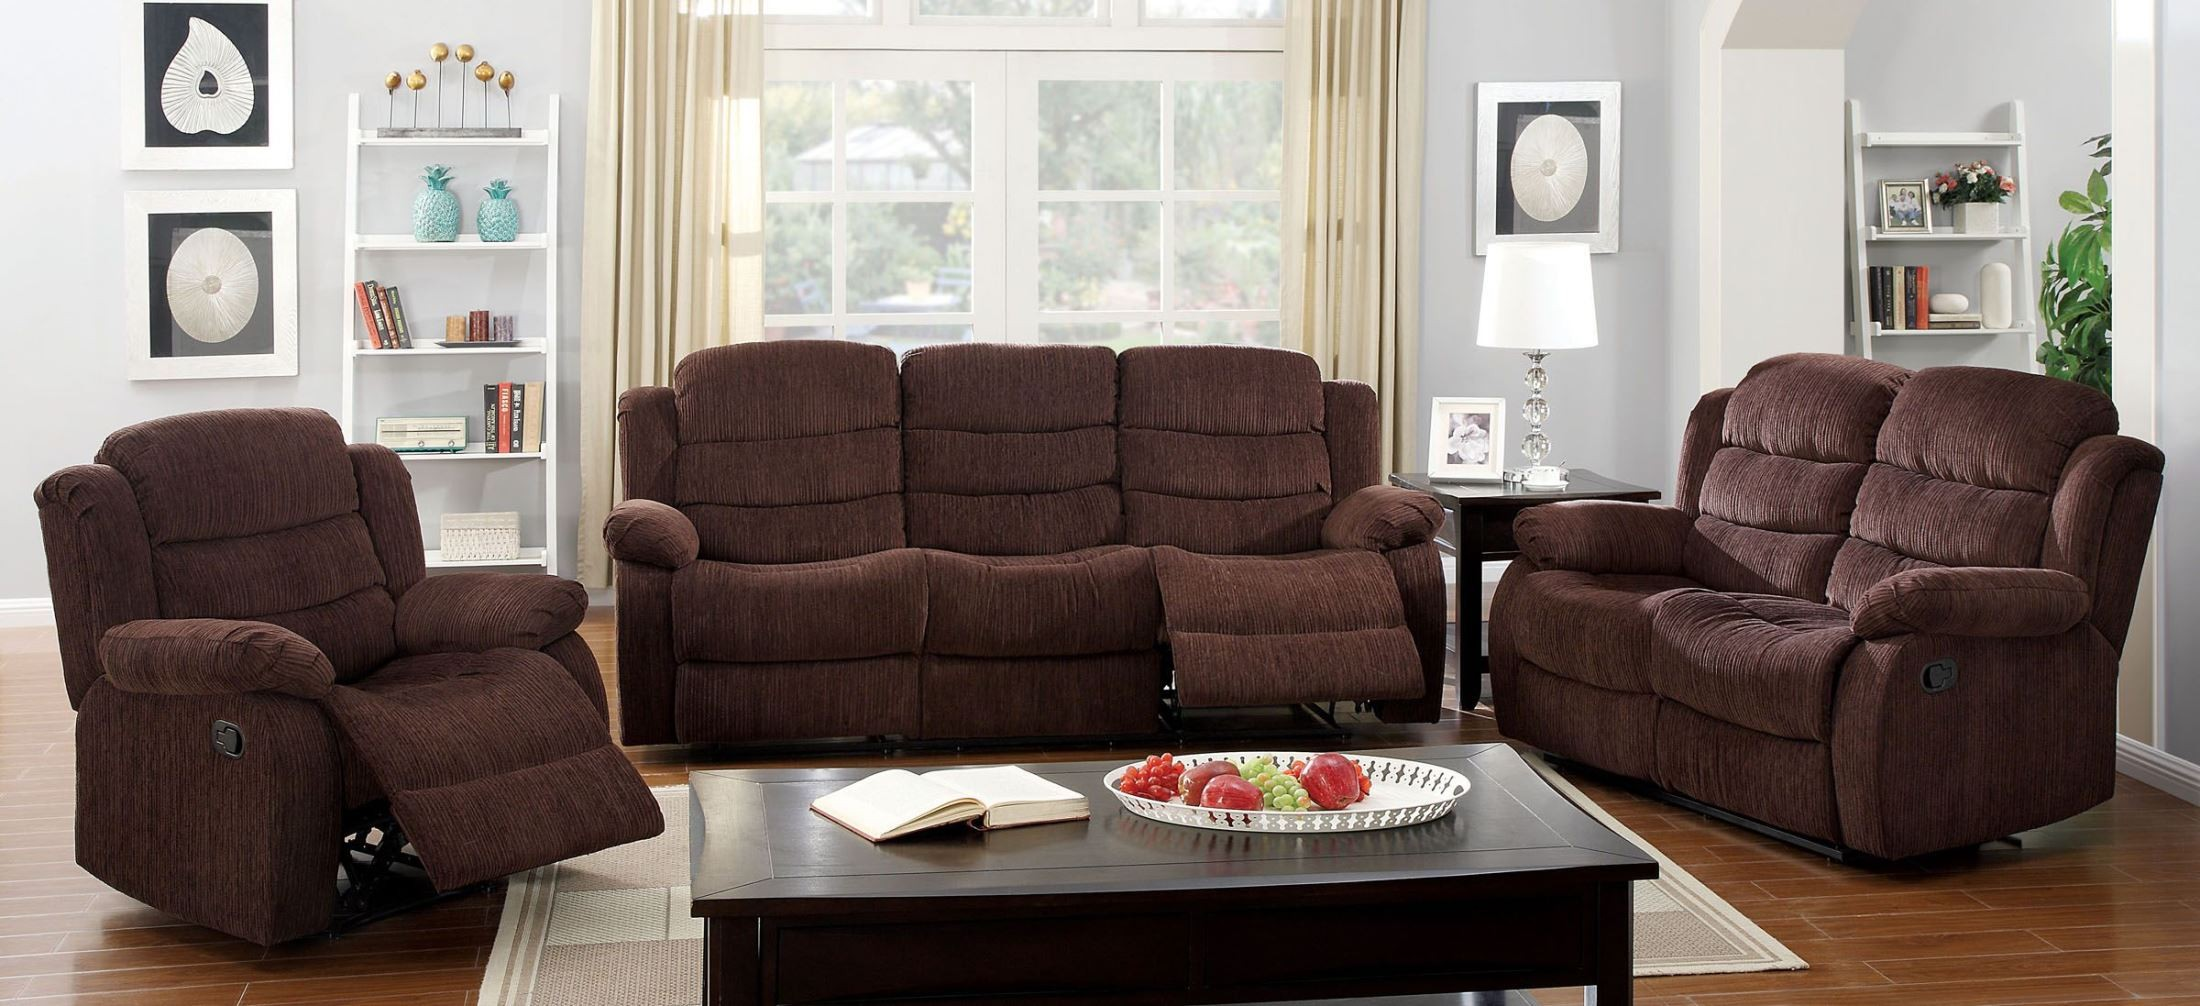 Millville dark brown chenille reclining living room set for Dark brown living room set